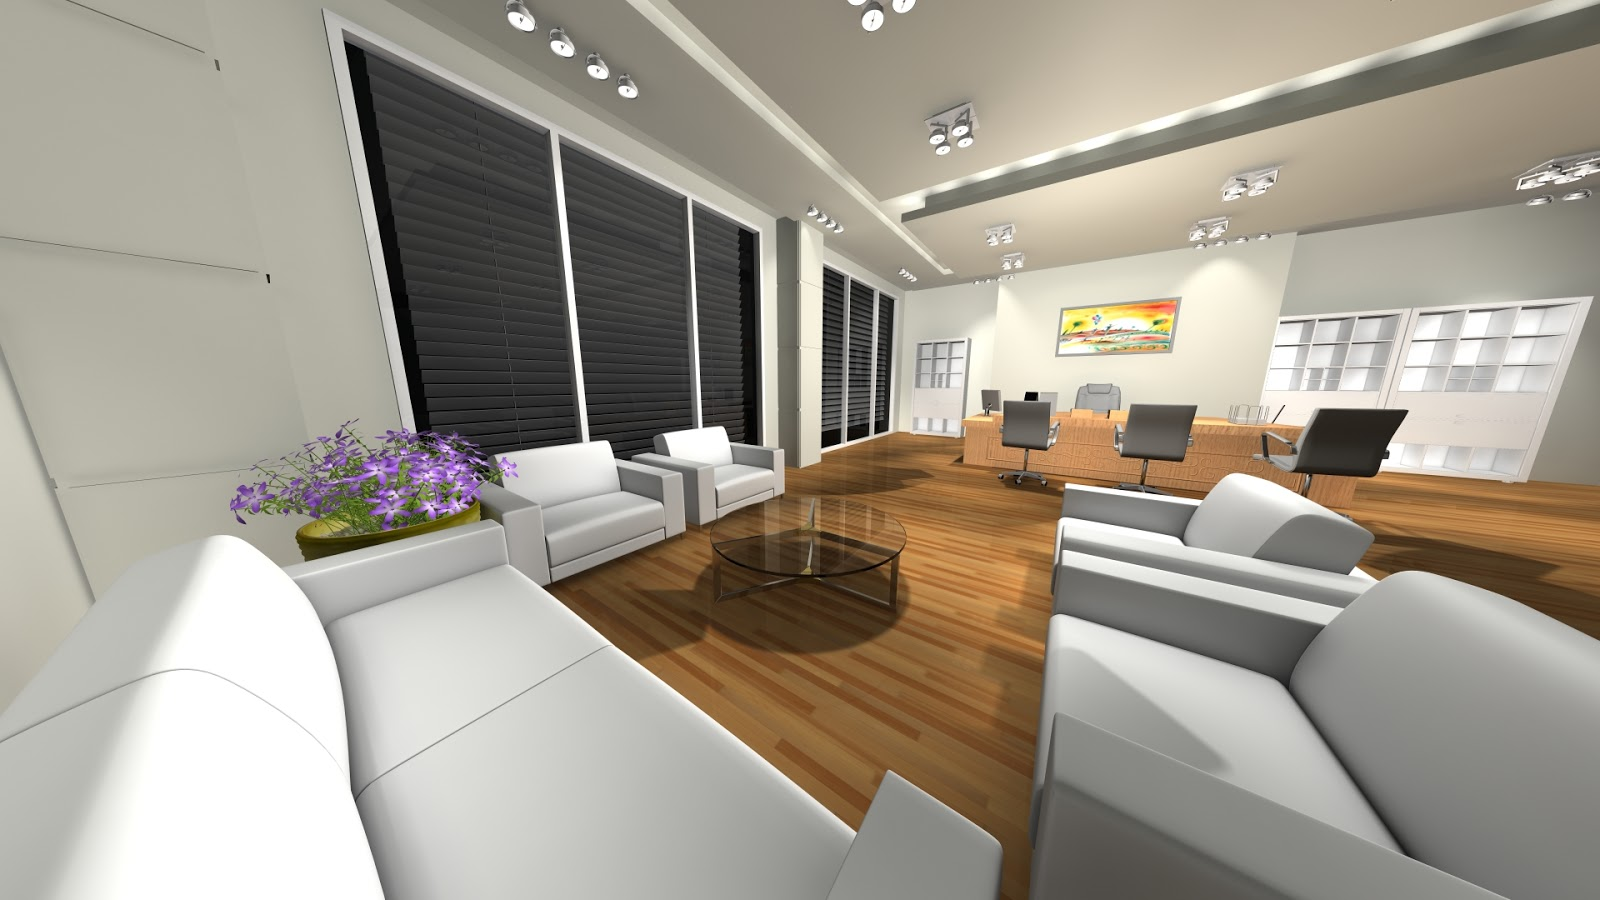 Sajid designer office room 3d interior design 3ds max for 3d interior designs images